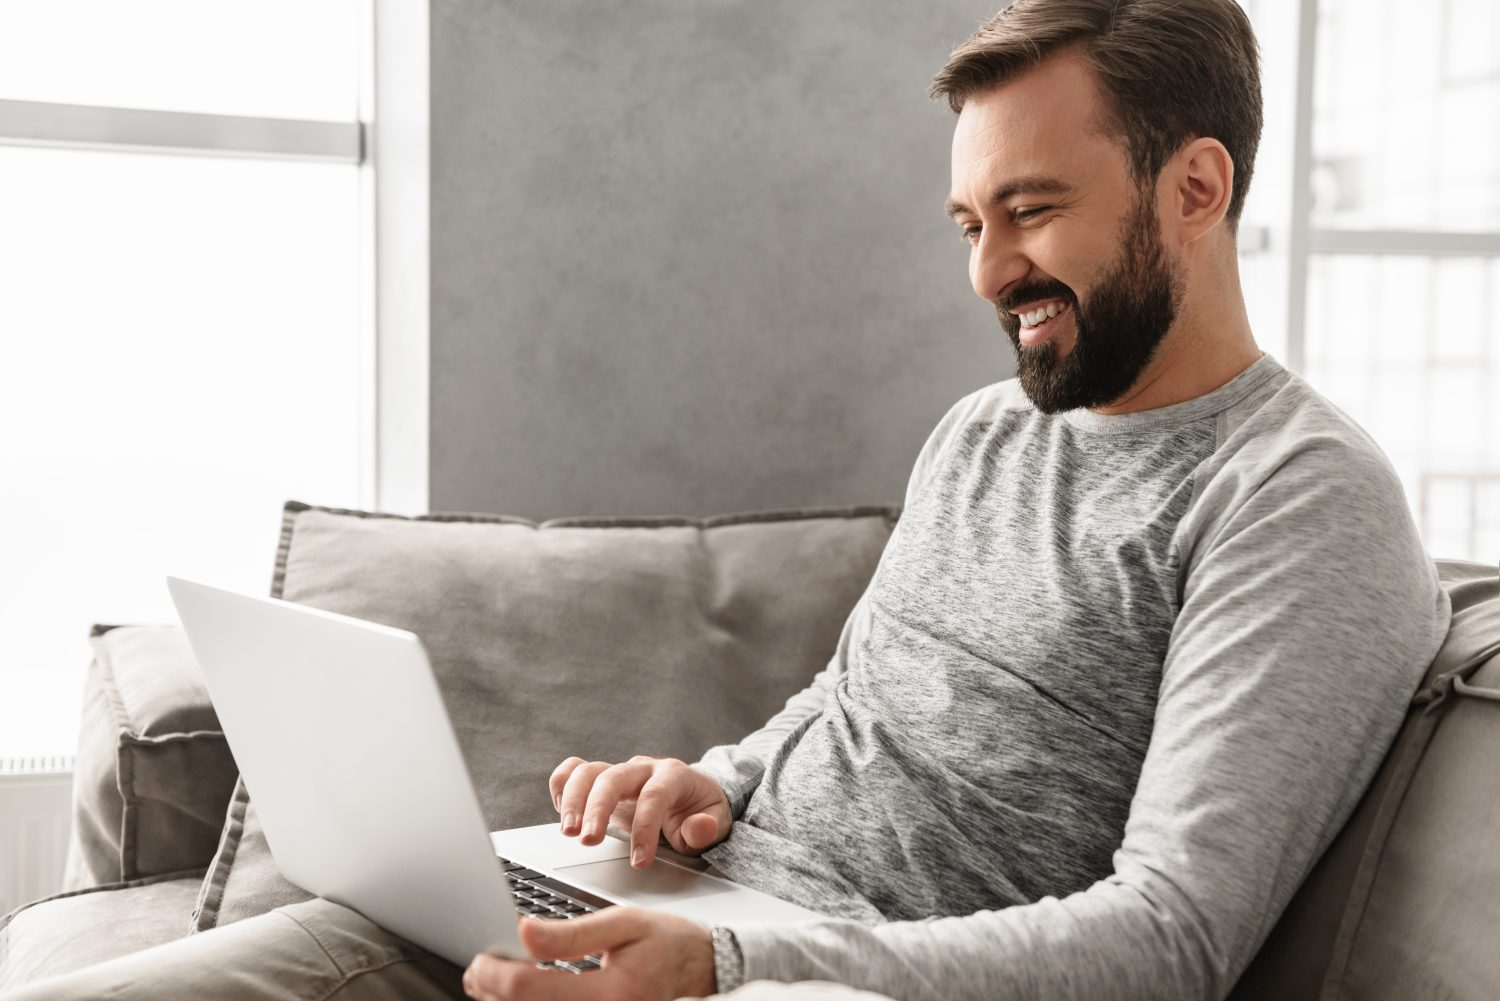 Image of a smiling young man seated on a couch using his laptop computer